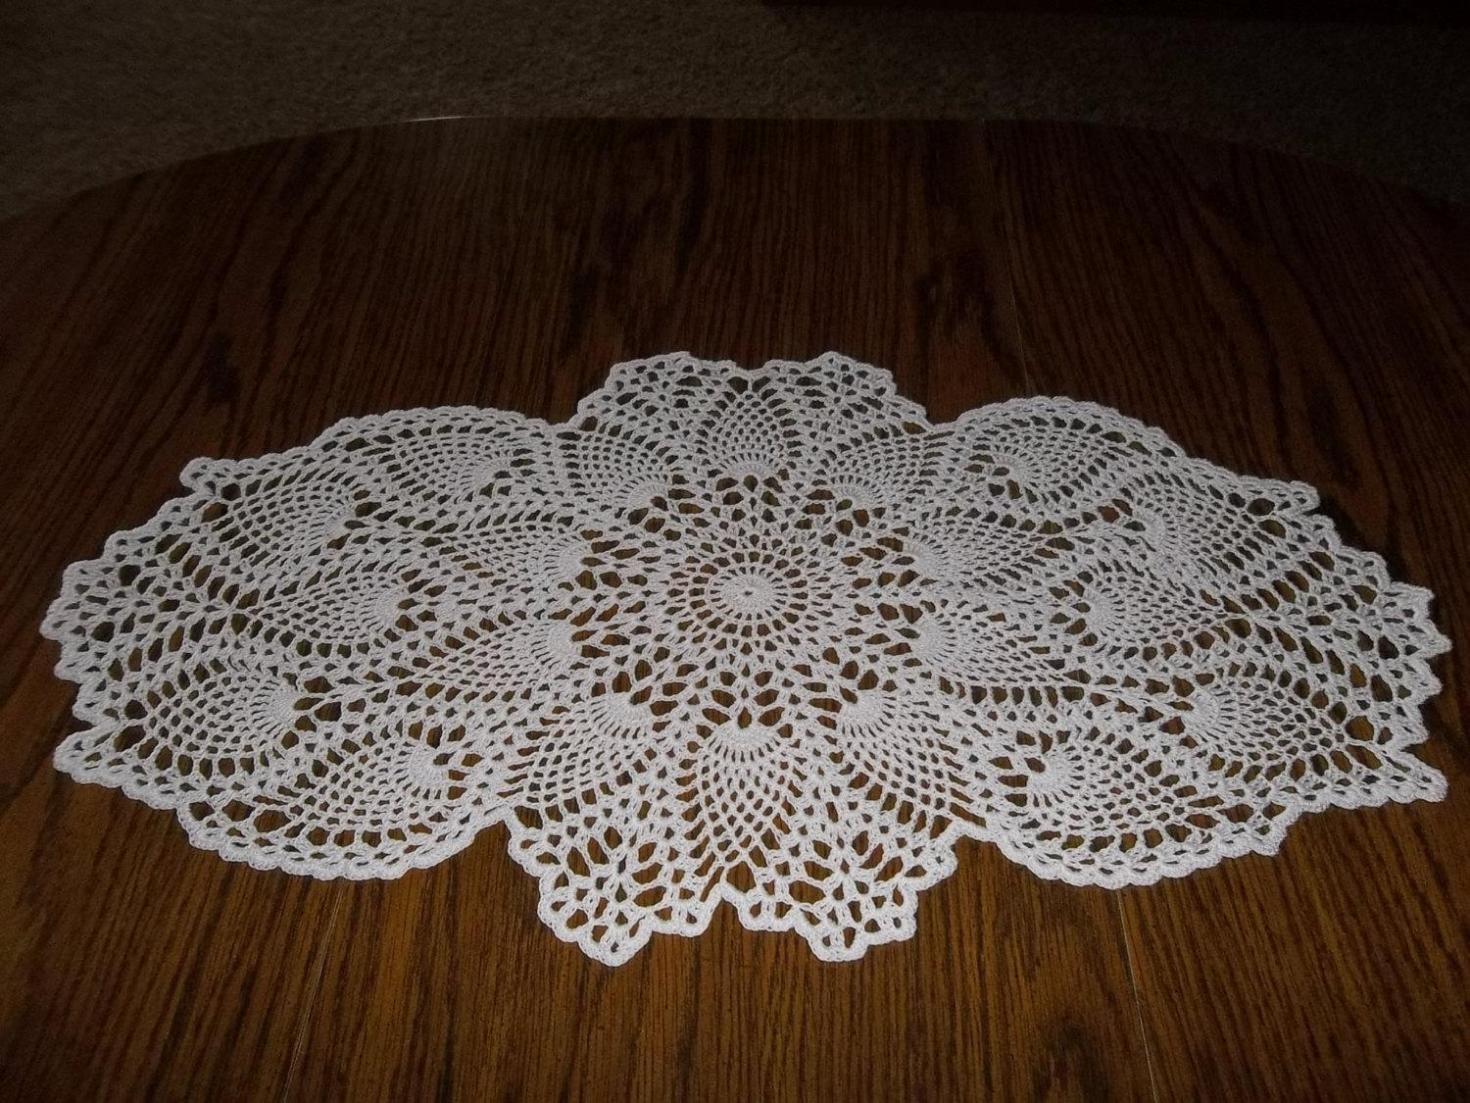 Free Crochet Patterns Runners : Just for You: 17 Crochet Table Runner Patterns for ...